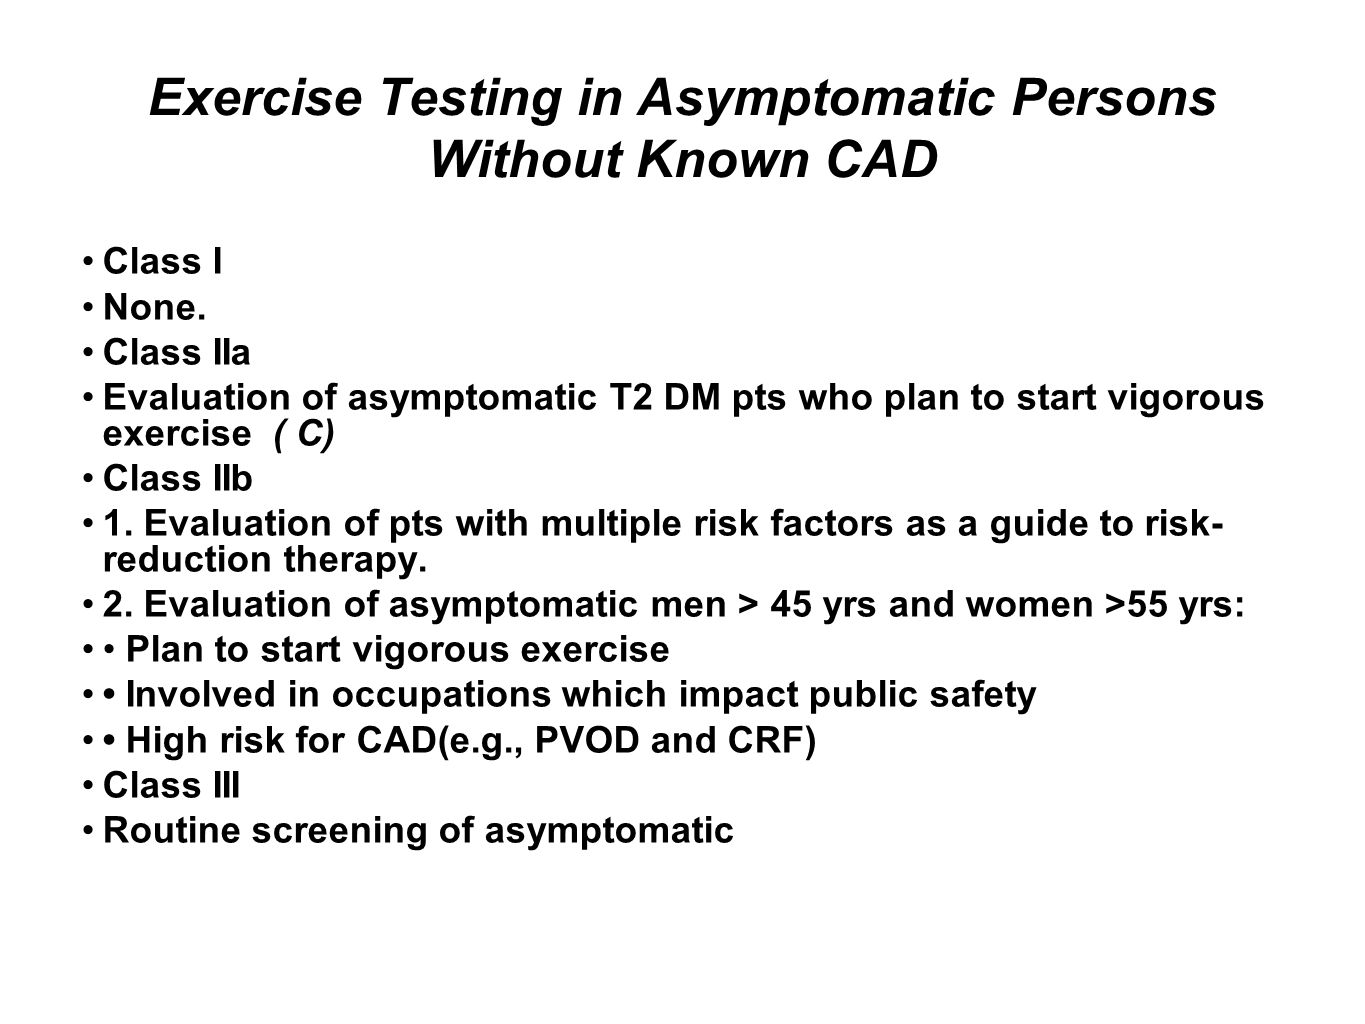 Exercise Testing in Asymptomatic Persons Without Known CAD